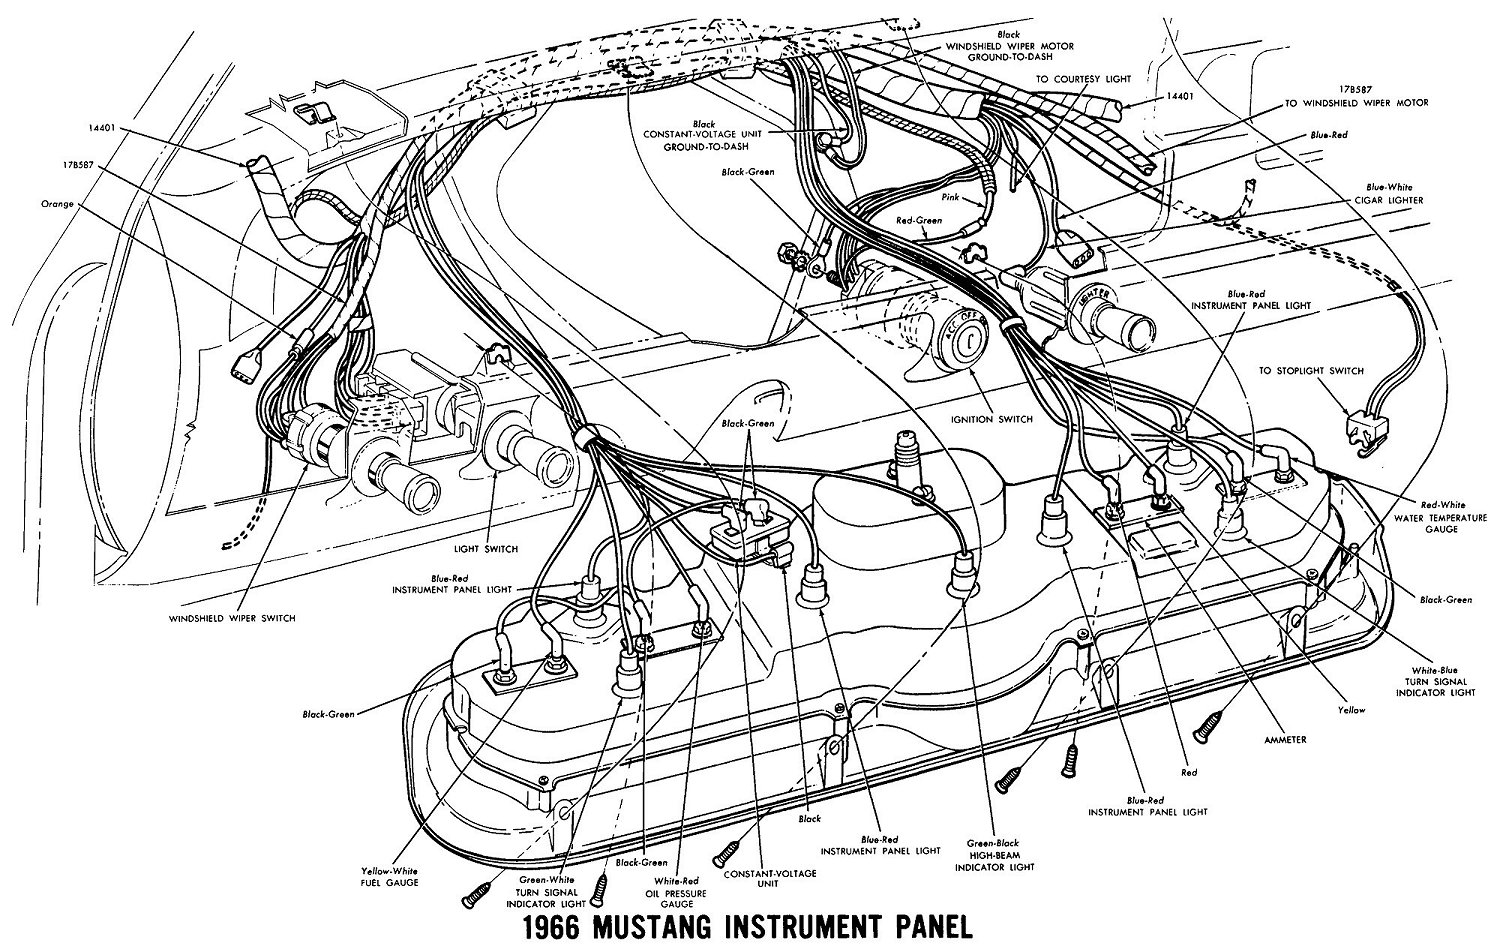 1966 mustang instrument panel wiring diagram wiring diagrams rh noppon co 68 Mustang Wiring Diagram 1968 Mustang Alternator Wiring Diagram